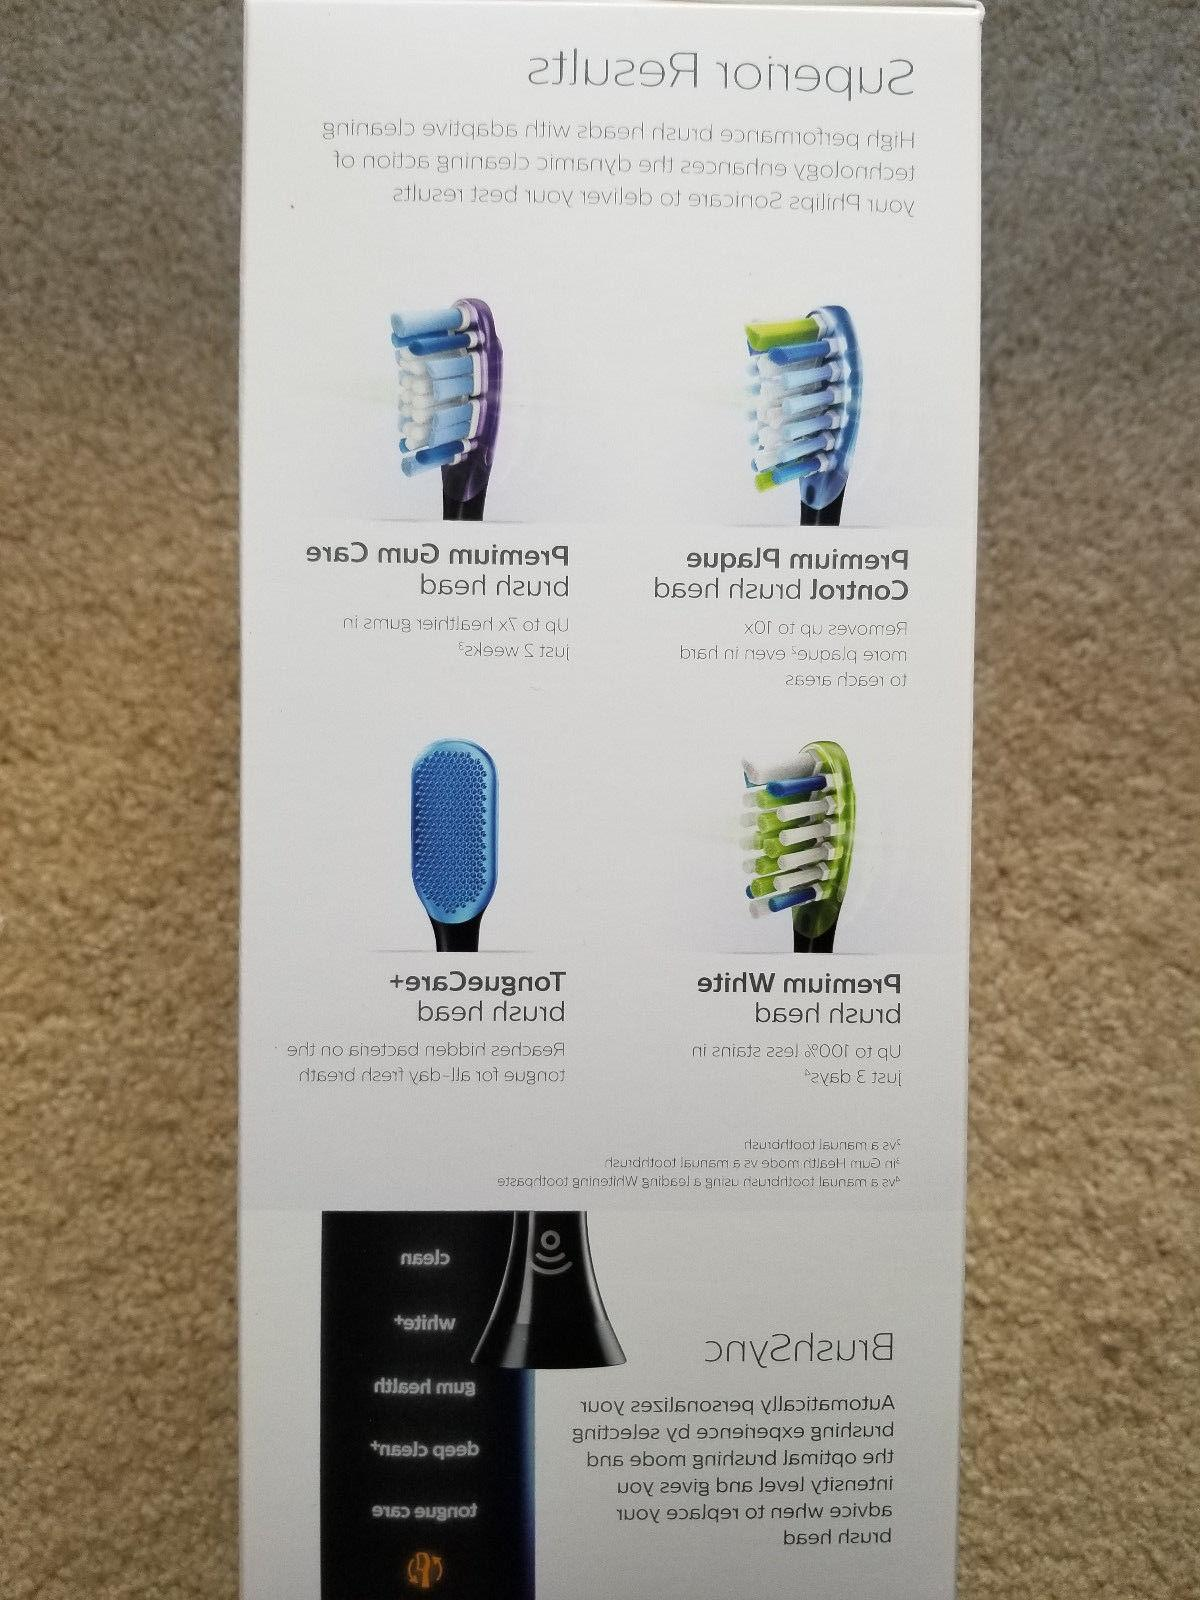 PHILIPS SMART BLACK TOOTHBRUSH 9500 SEALED!